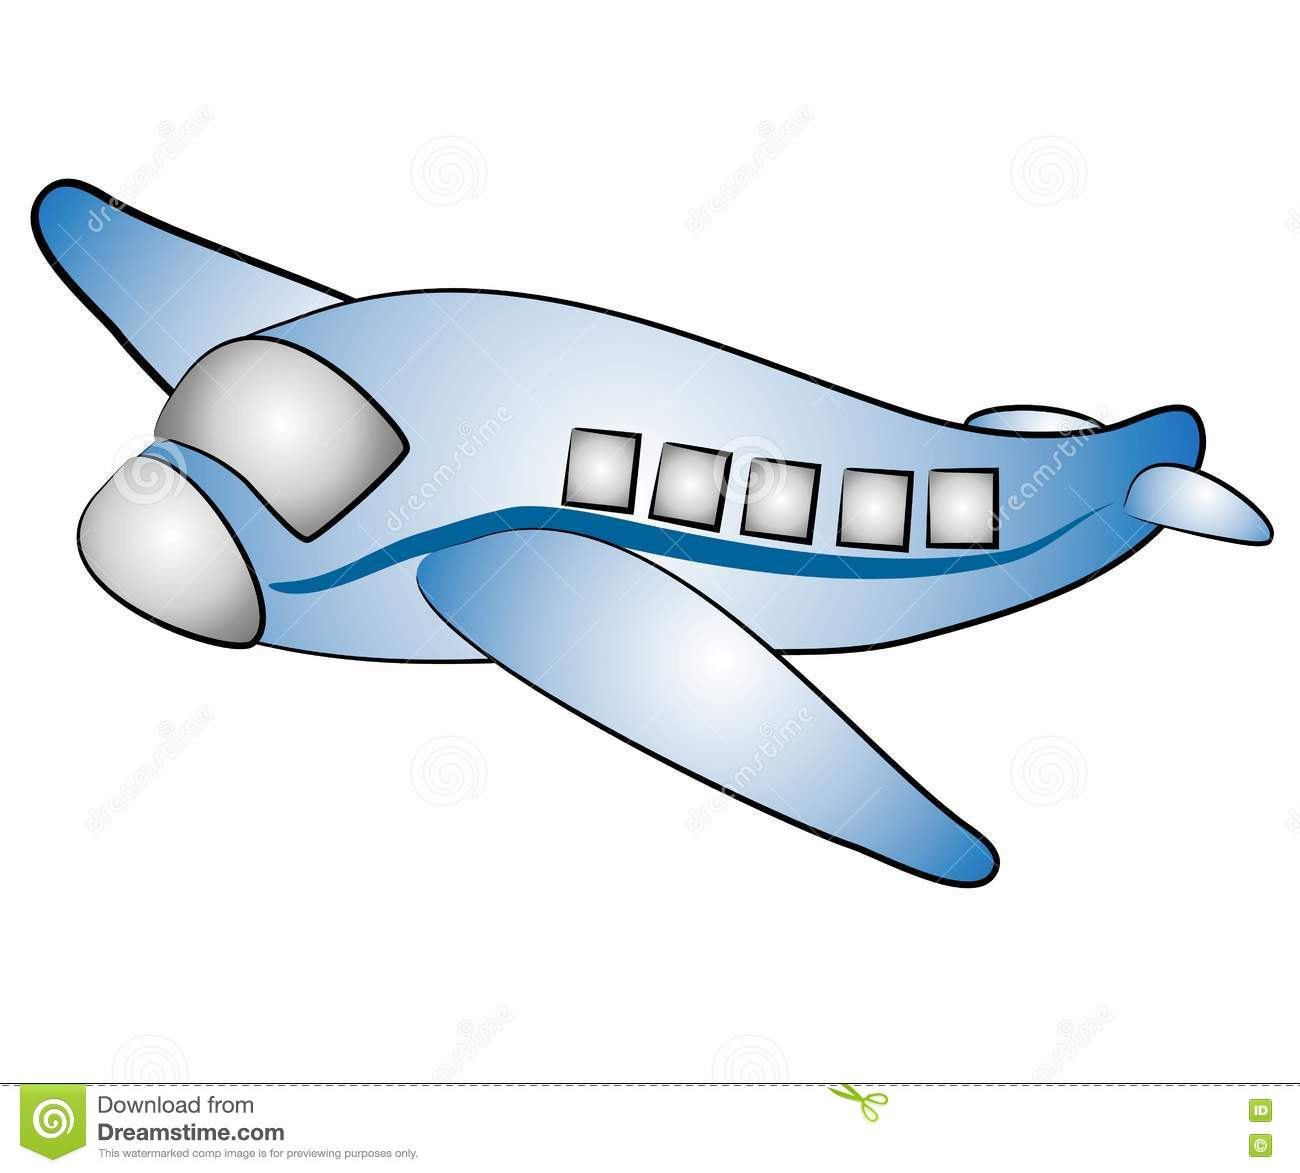 Isolated Airplane Jet Clip Art Picture. Image: 3131344.